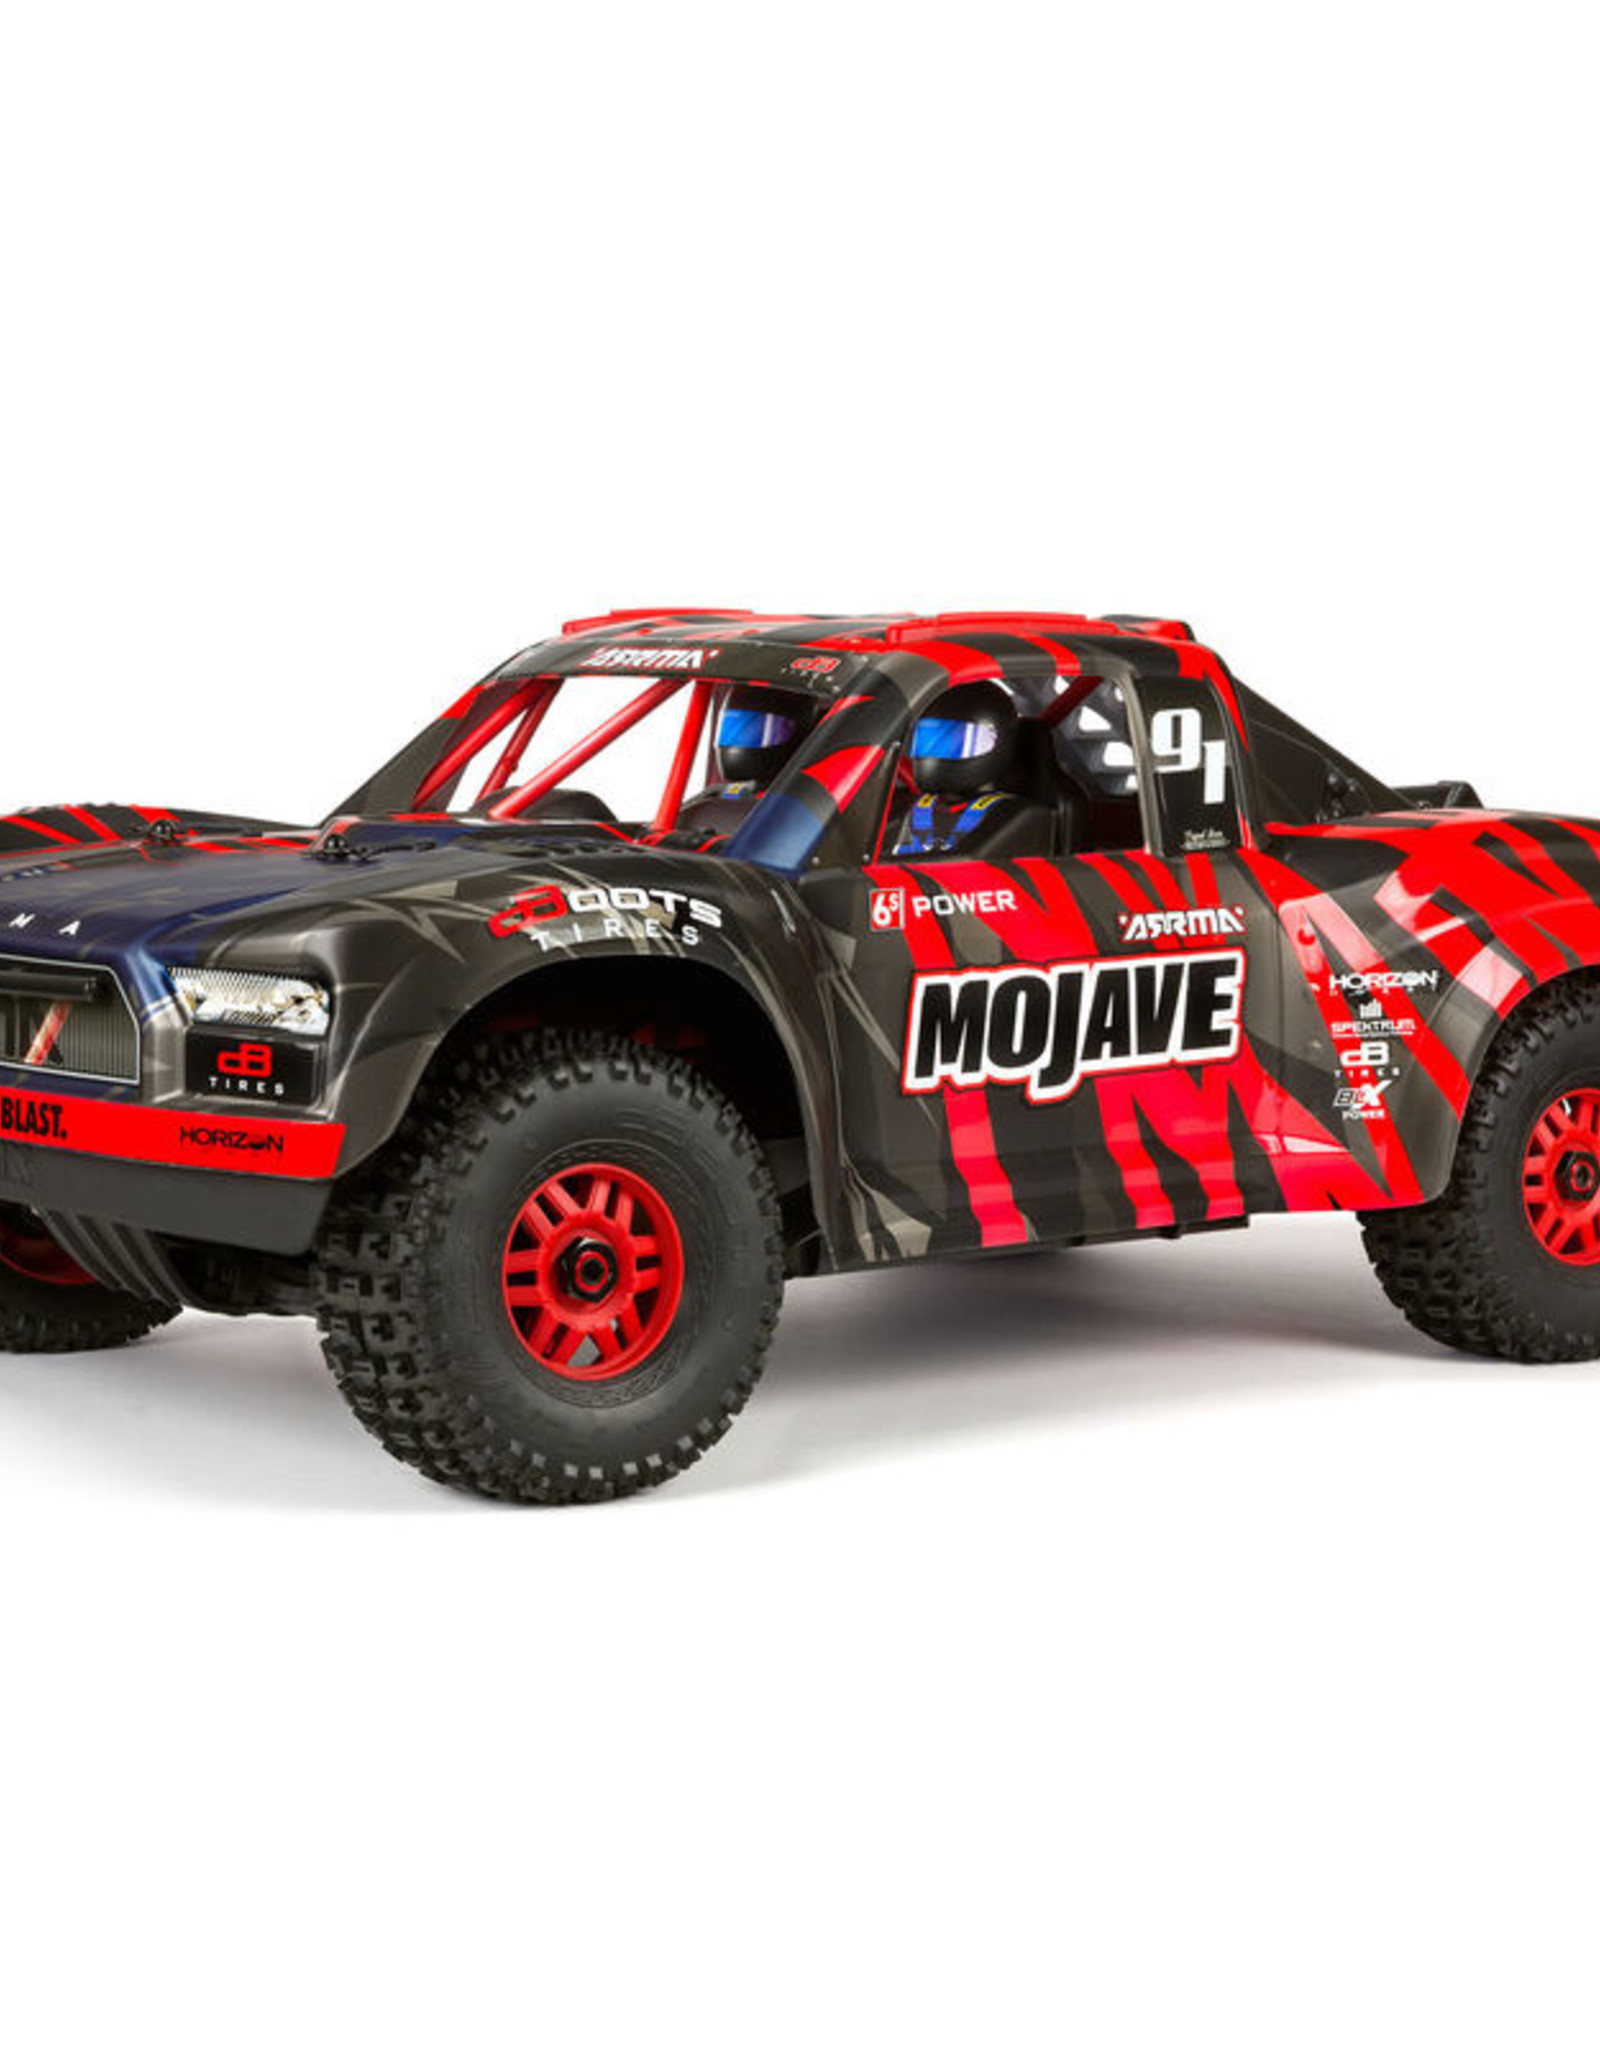 Arrma ARA106058T2 Mojave 6S BLX 1/7TH Scale Desert Racer Black/Red